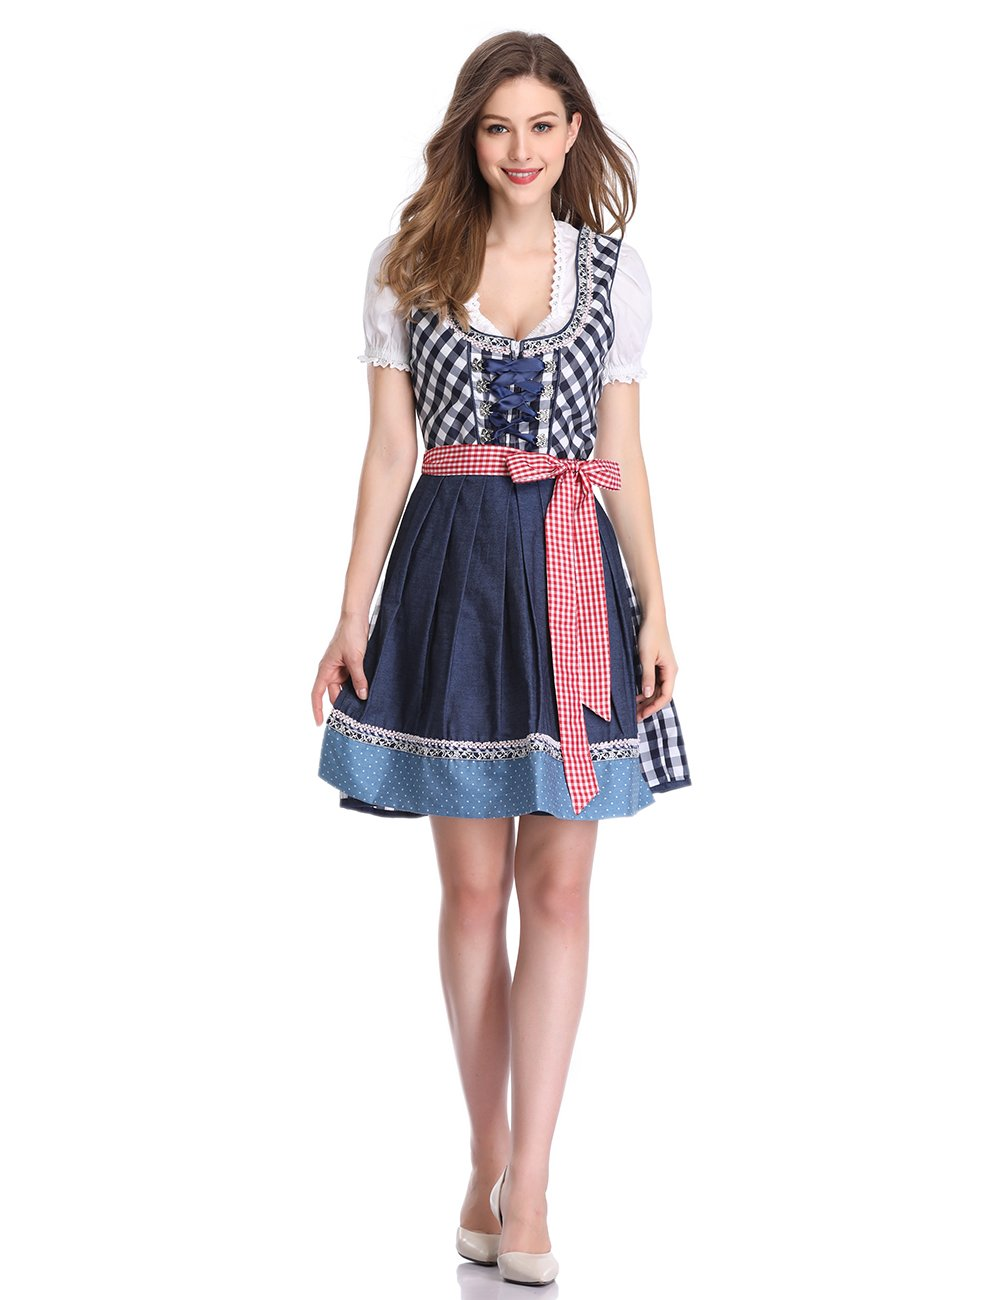 GloryStar KoJooin Women 3 Pieces Bavarian Oktoberfest Costumes Barmaid Dirndl Dress Blue Plaid 36